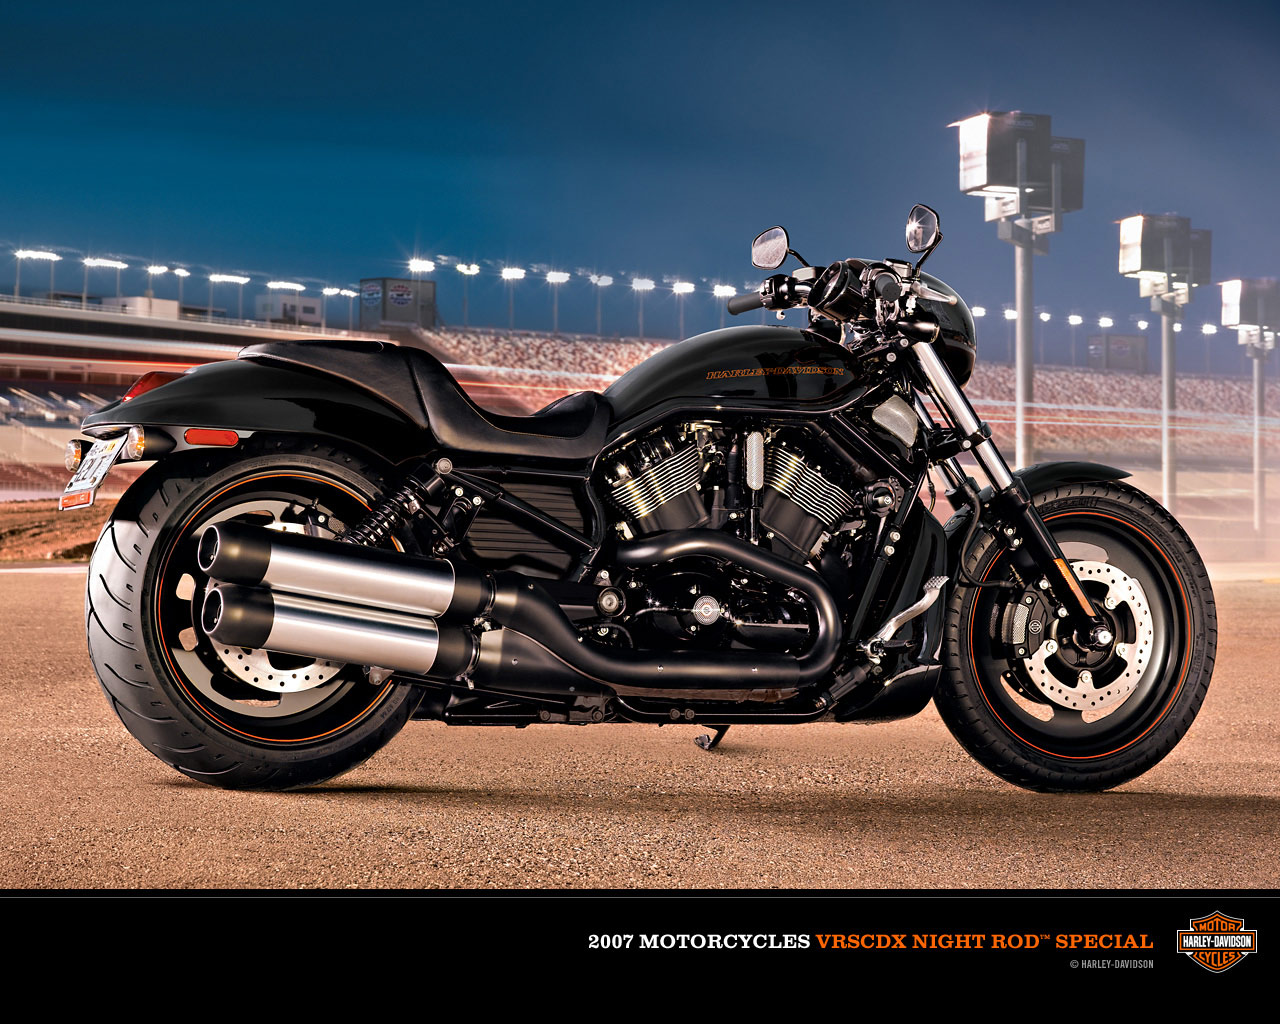 Fast Bikes Harley Davidson Dyna Motorcycle Review Wallpapers 2011 1280x1024